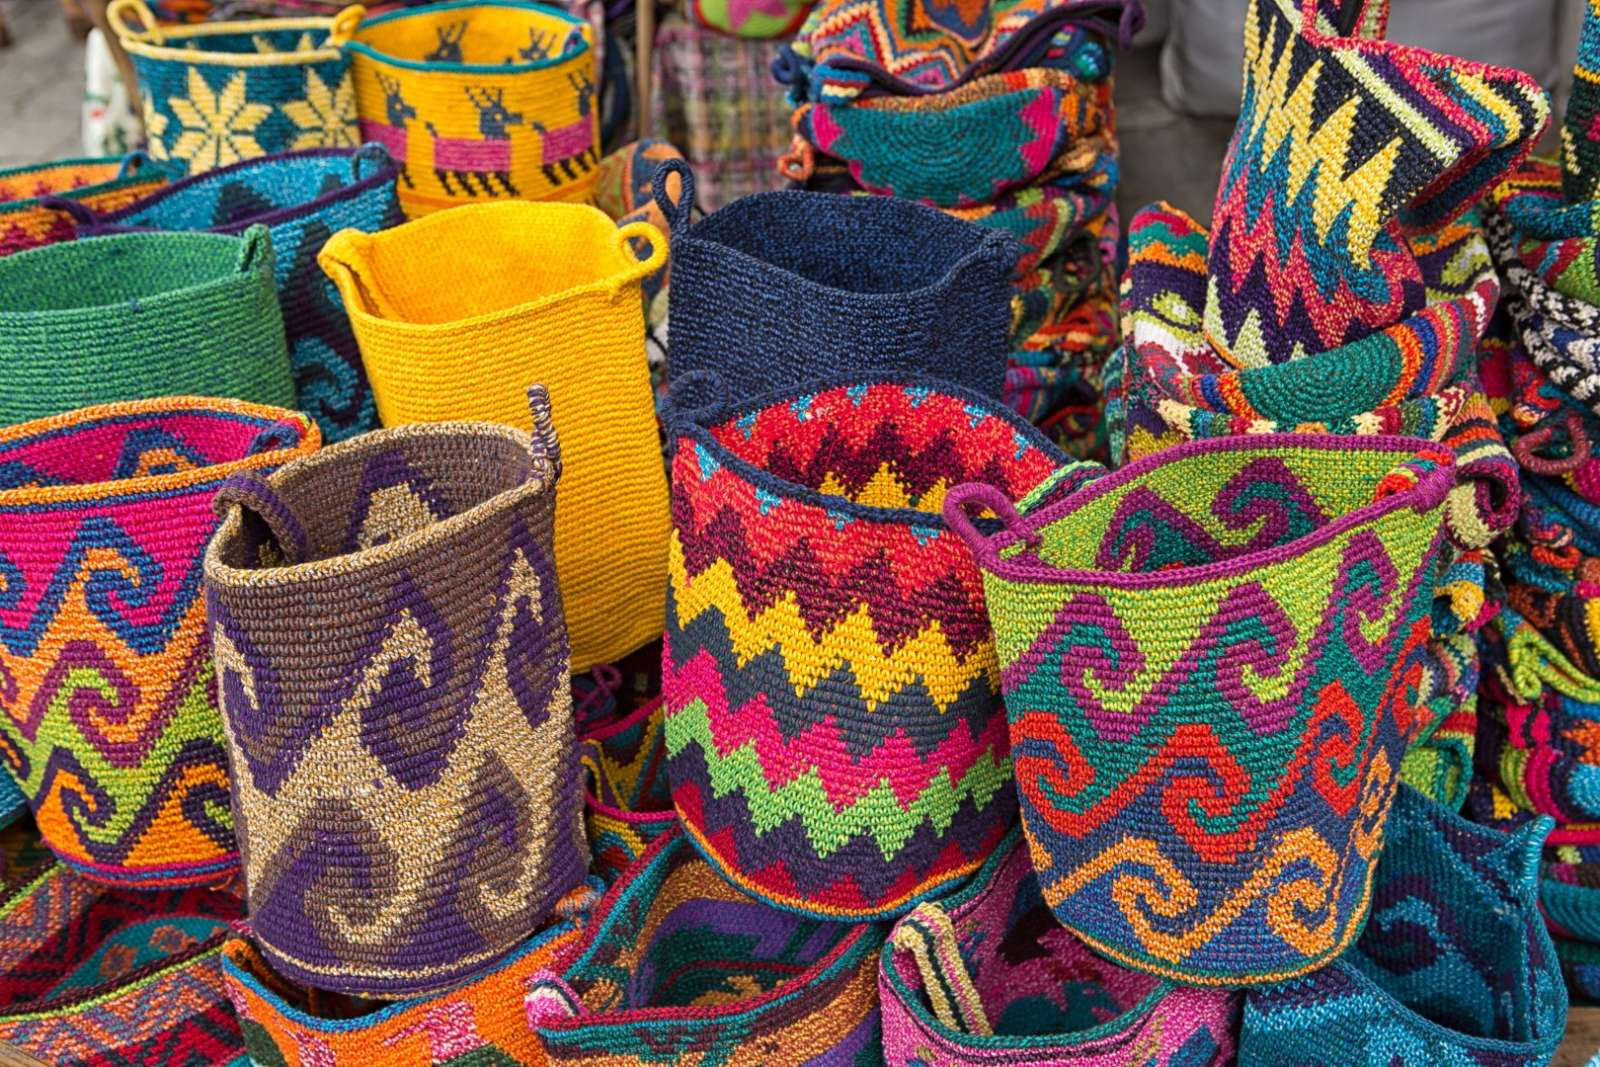 Colourful baskets for sale at the market in Chichicastenango, Guatemala